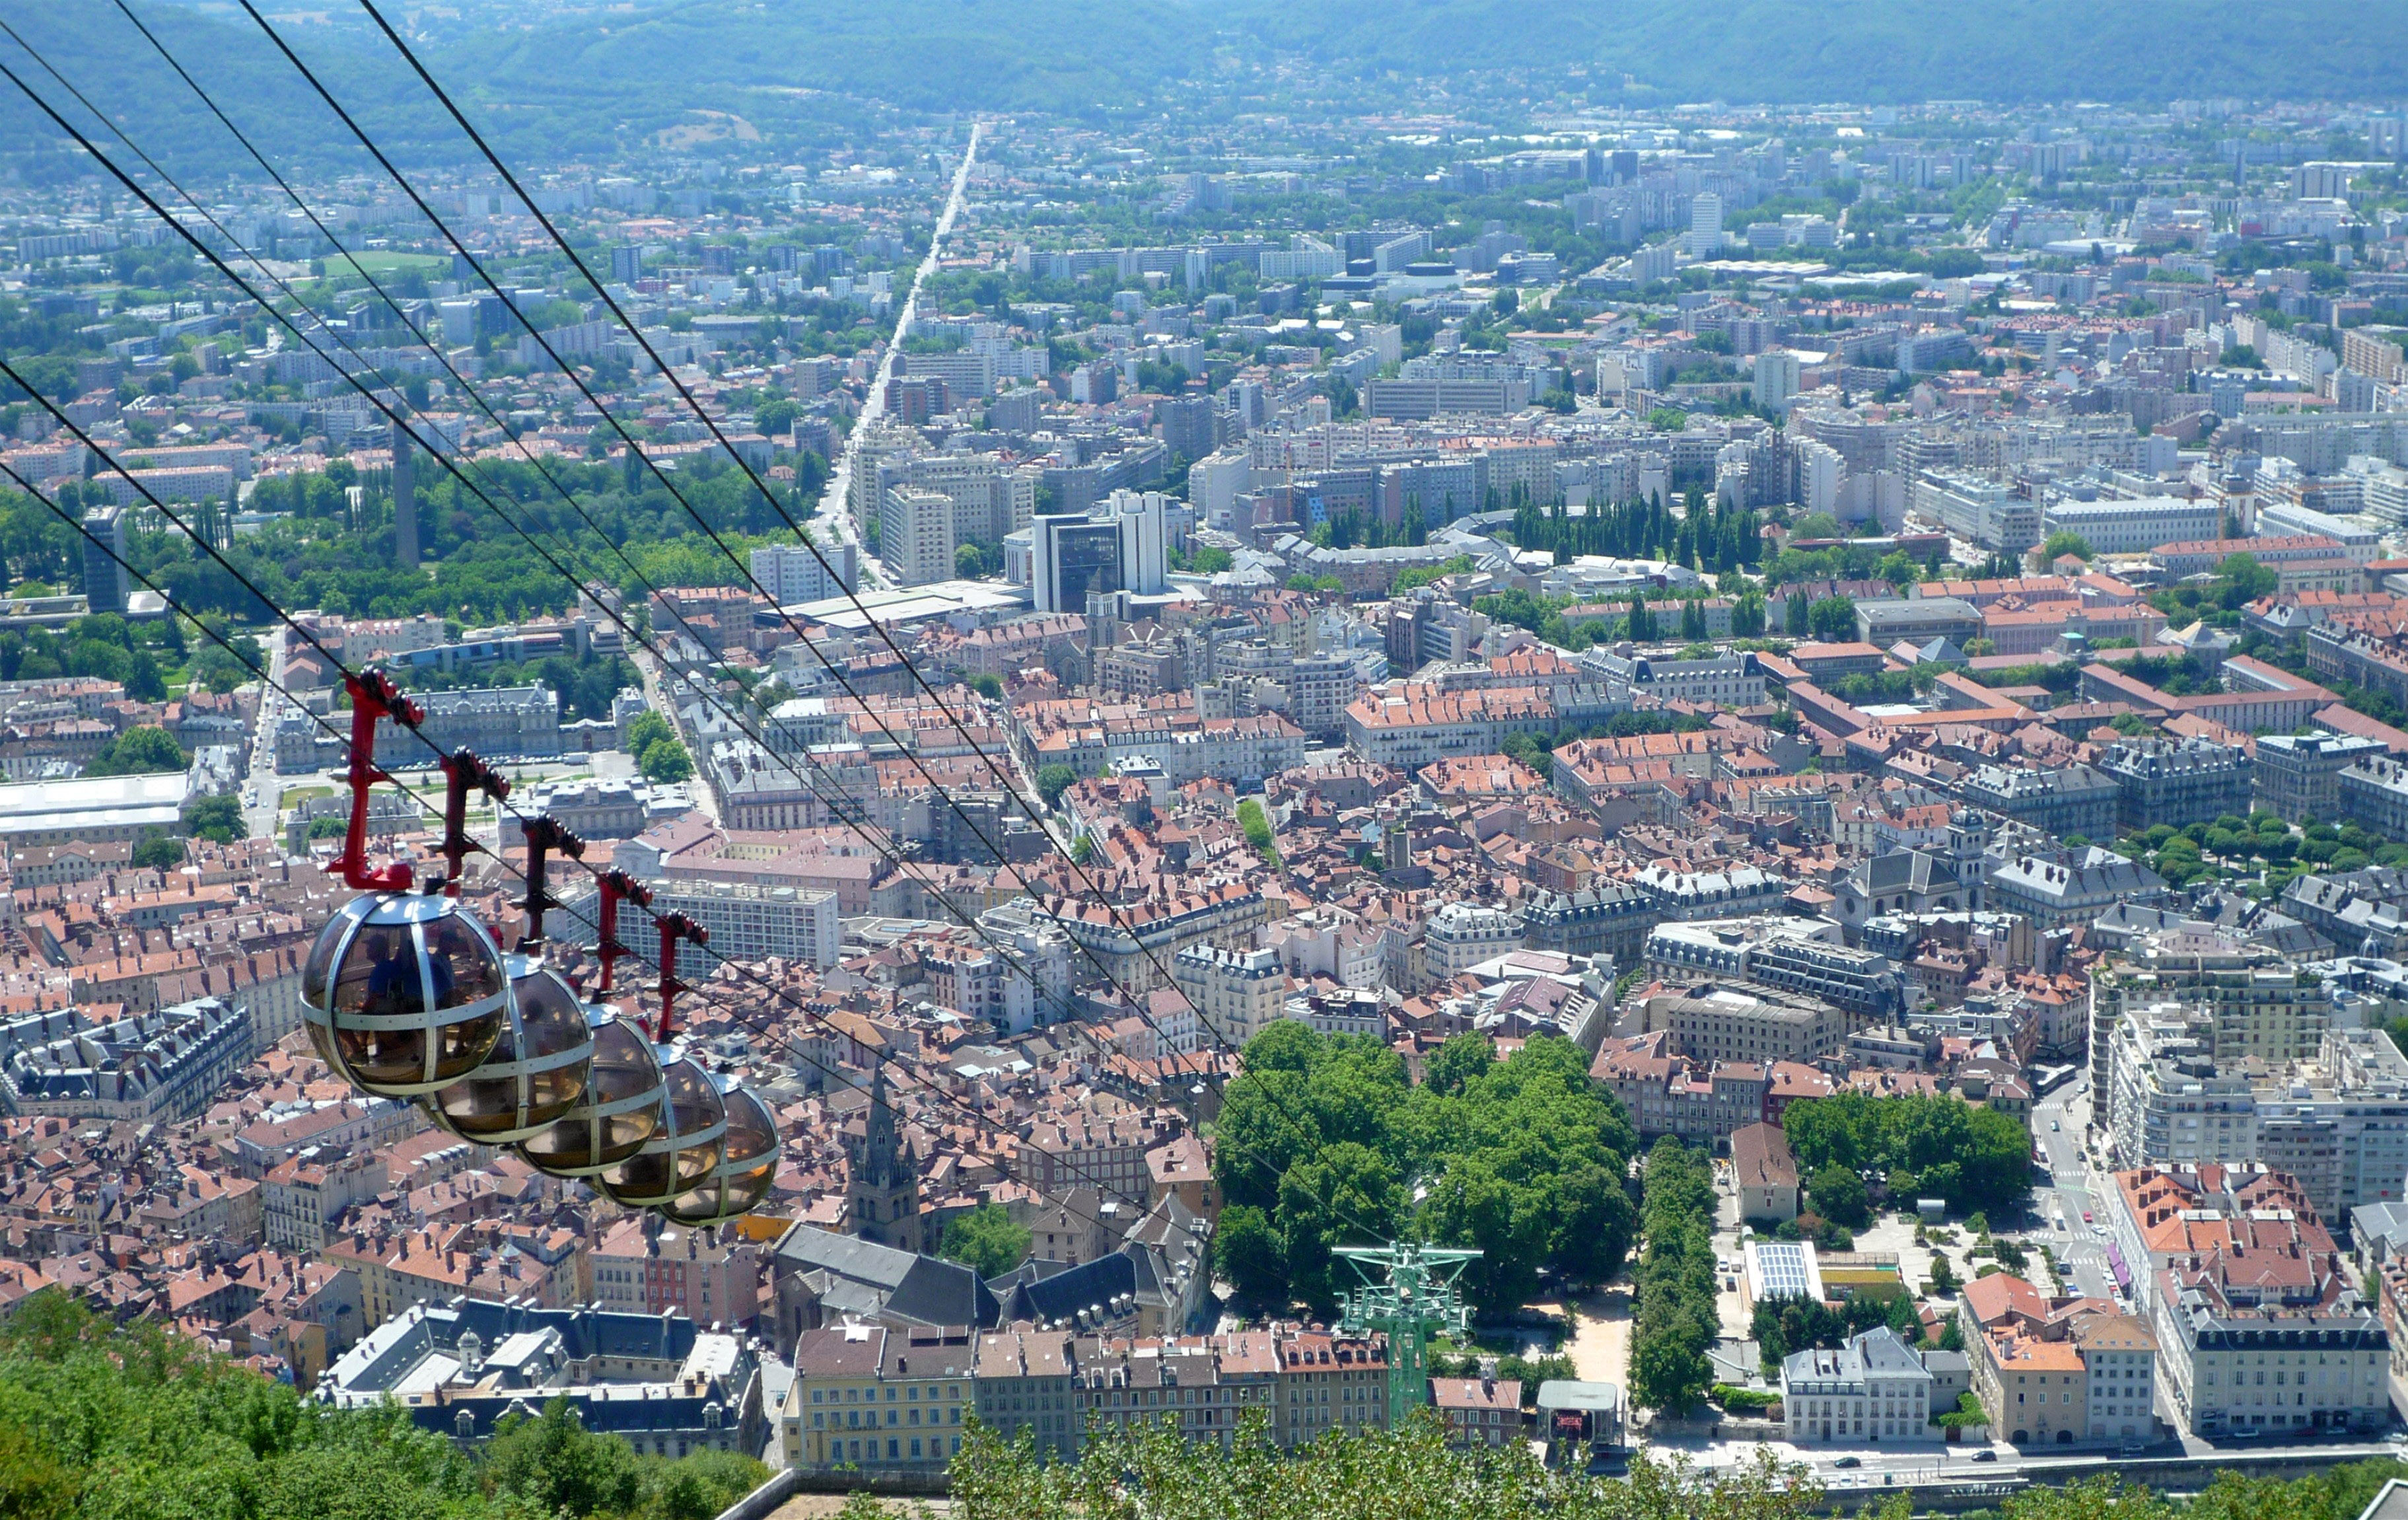 cable cars in cityscape in grenoble france image free stock photo public domain photo cc0. Black Bedroom Furniture Sets. Home Design Ideas